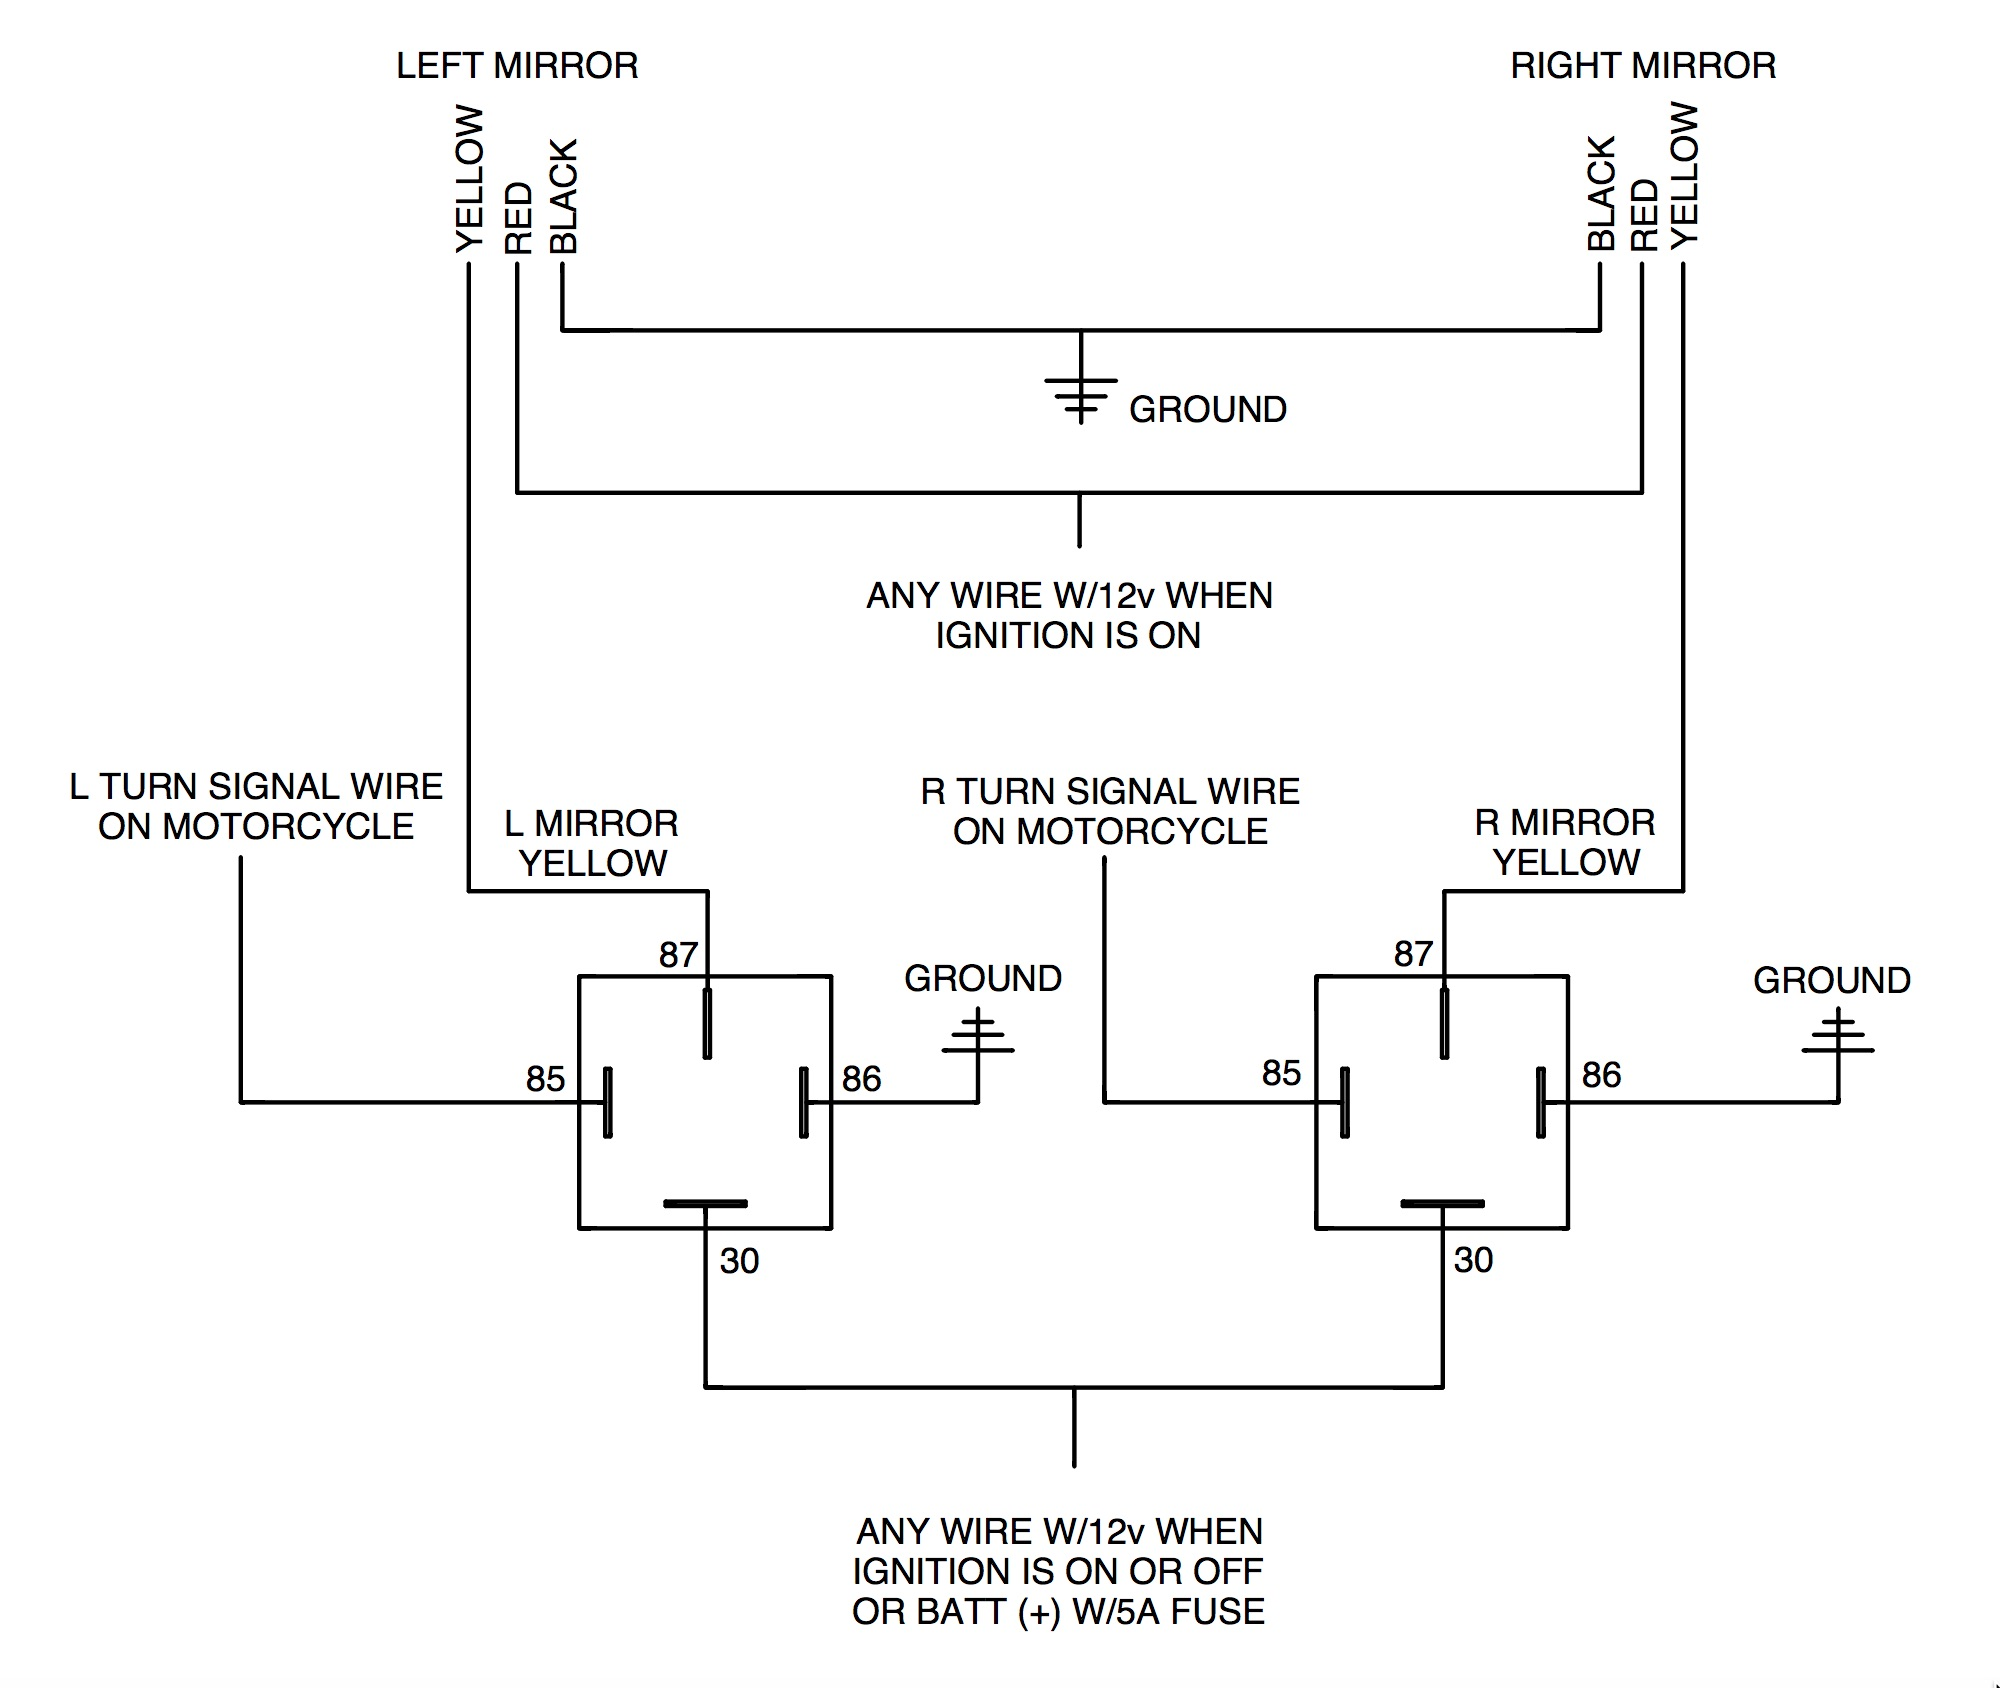 Rivco dual relay diagram adding rivco led mirrors to a victory cross country motorcycle Basic Turn Signal Wiring Diagram at panicattacktreatment.co